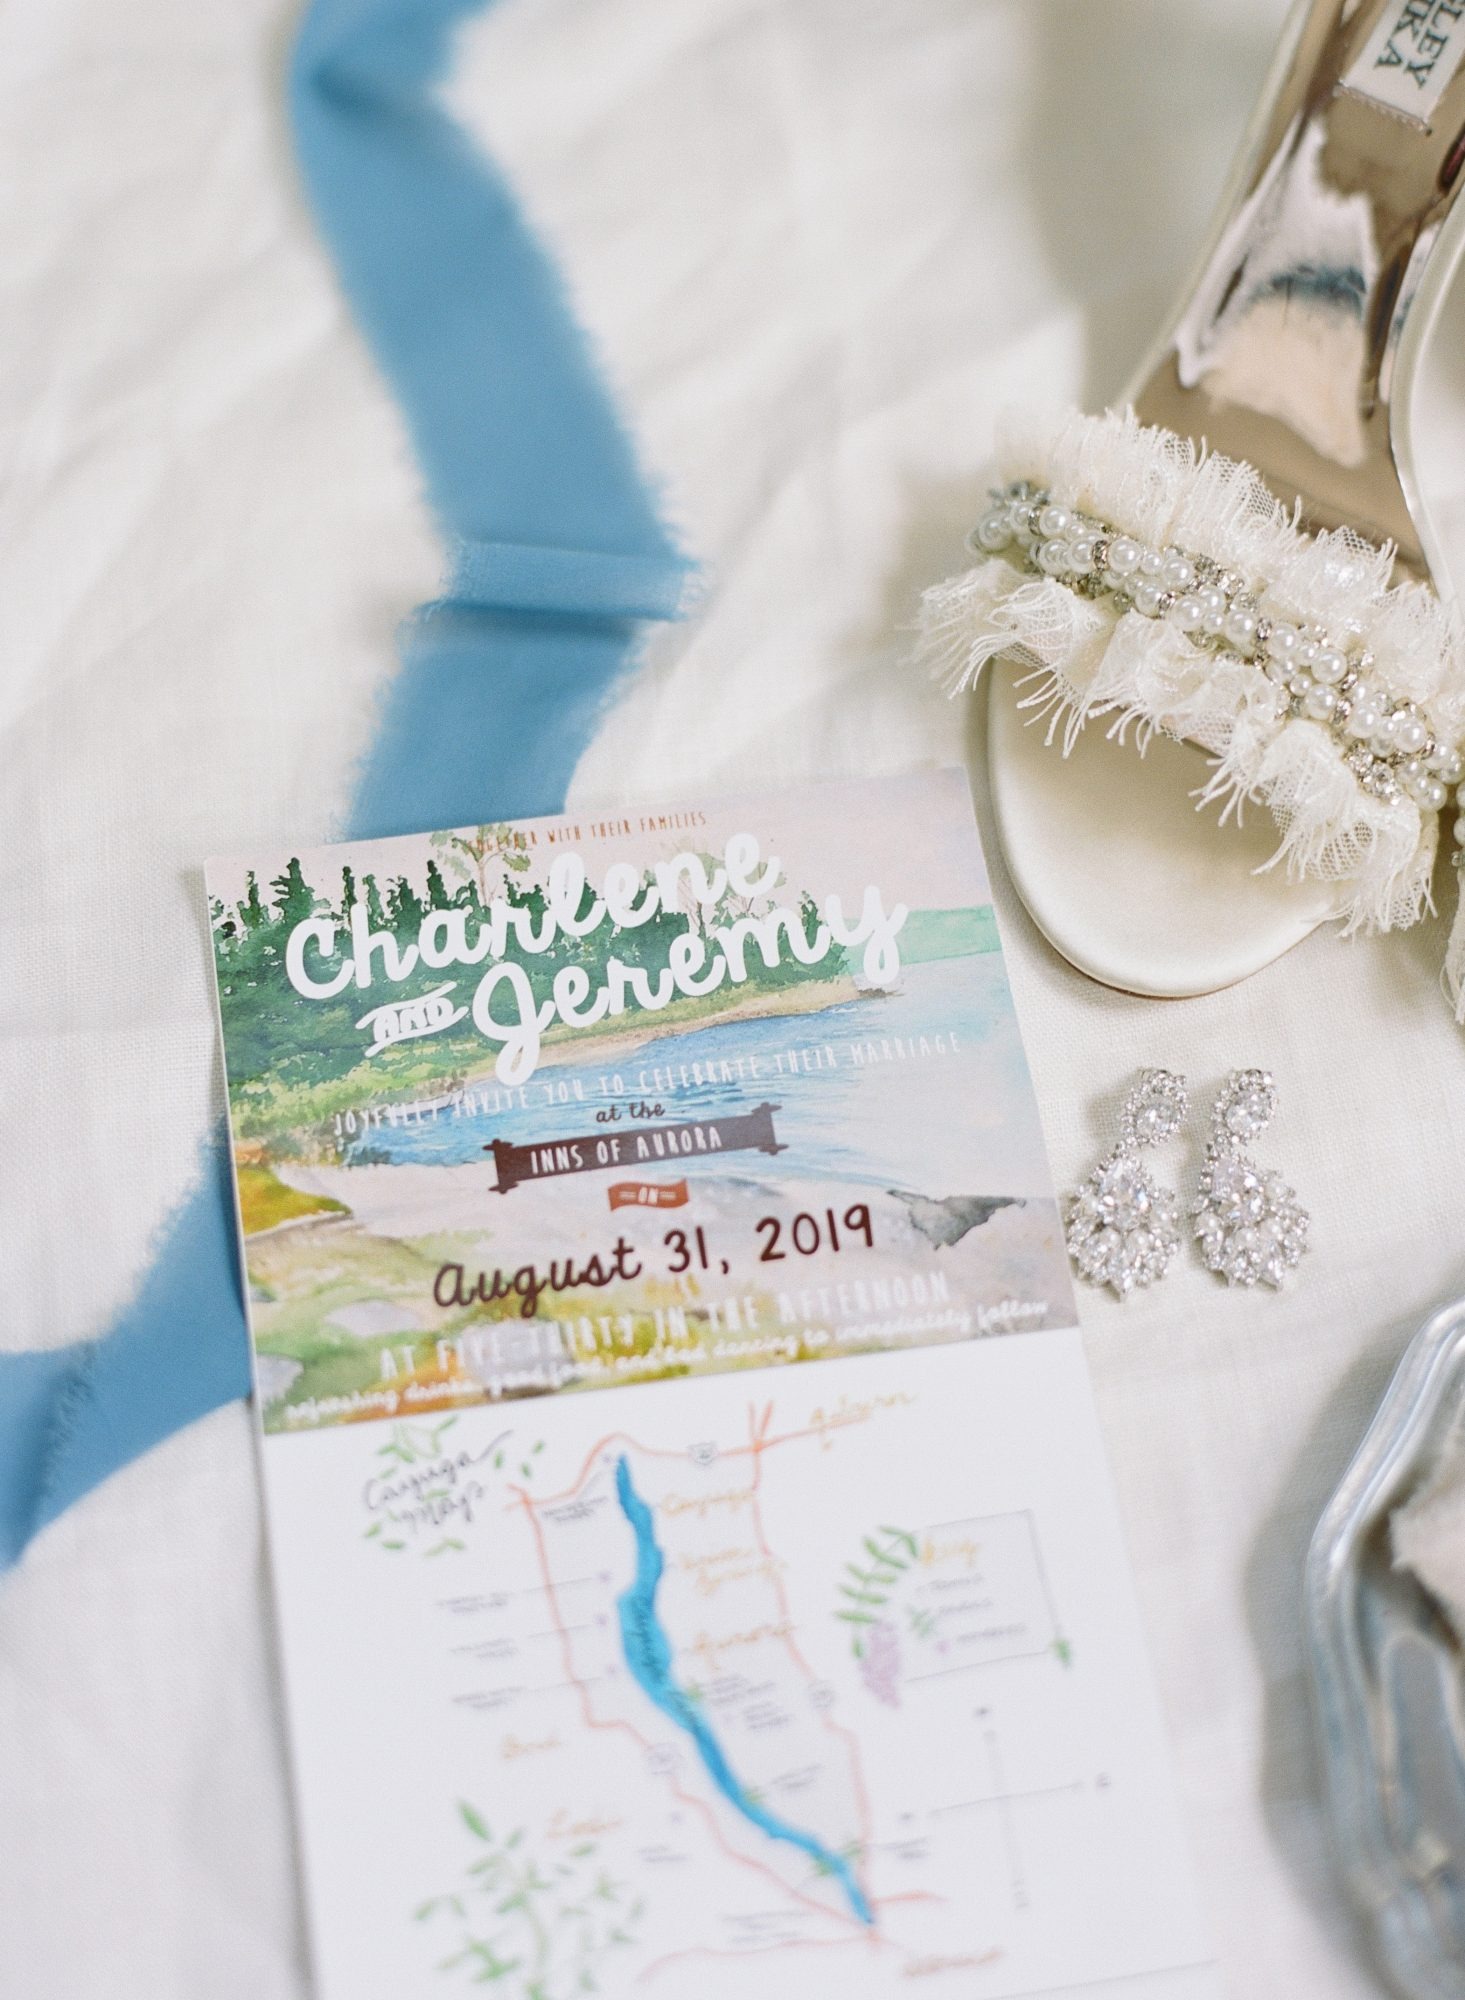 charlene jeremy wedding invitations with map